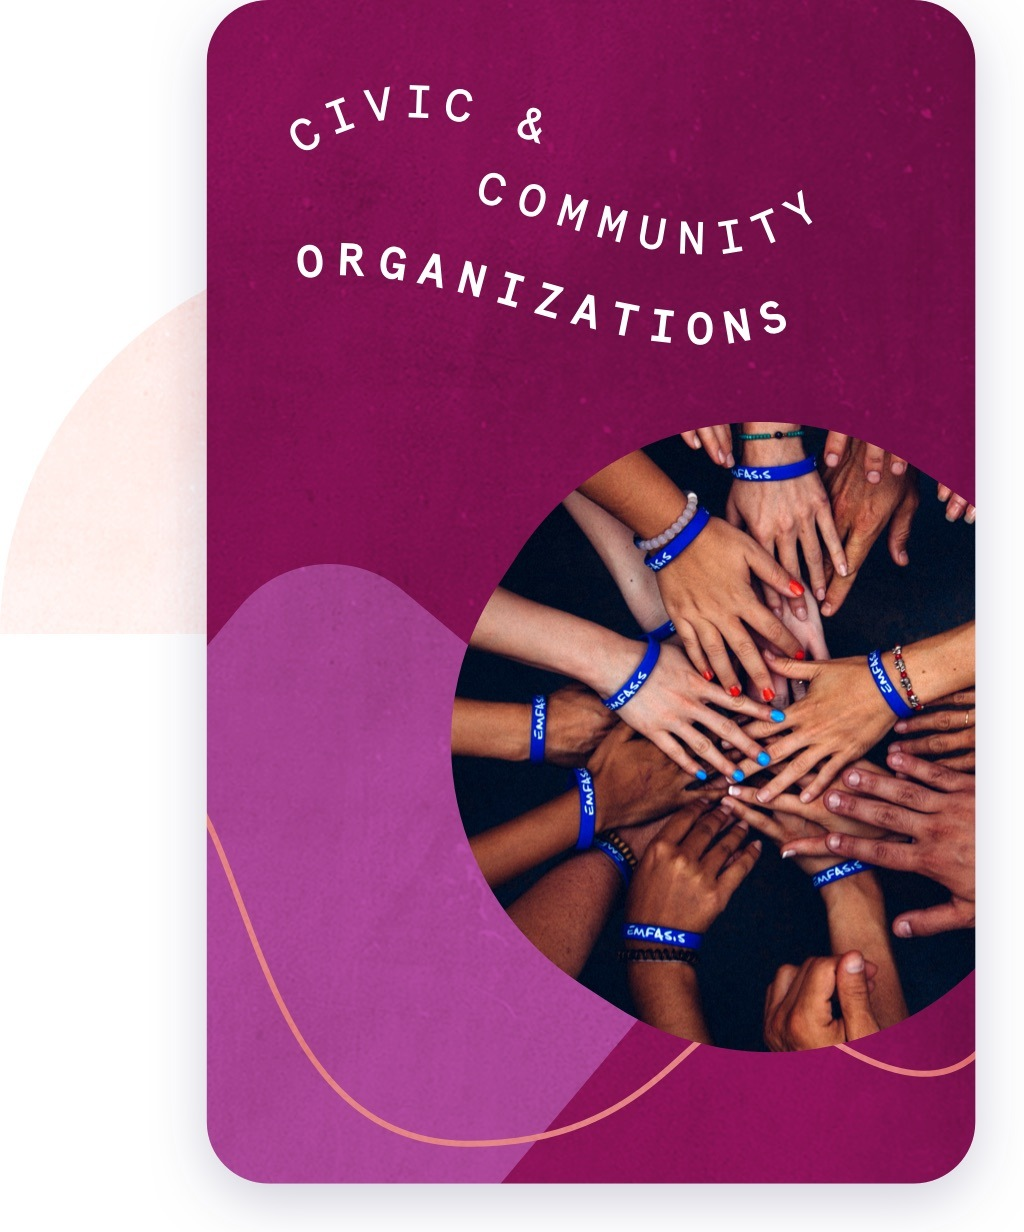 Civic & Community Organizations